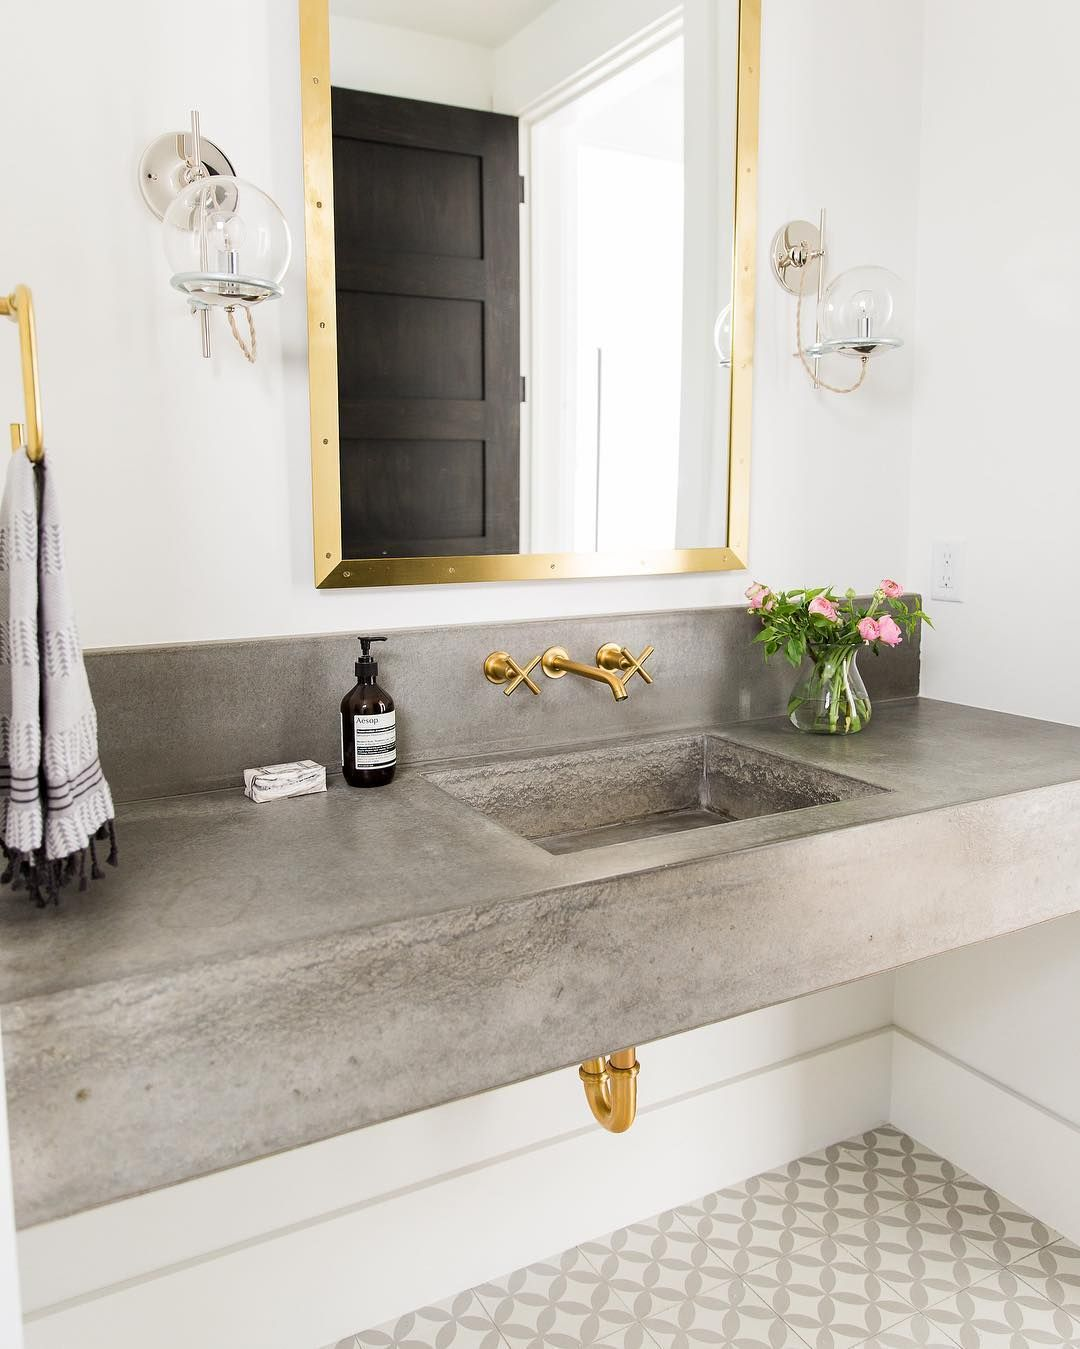 Badezimmer design gold concrete countertop gold mirror  udiomcgee  for the